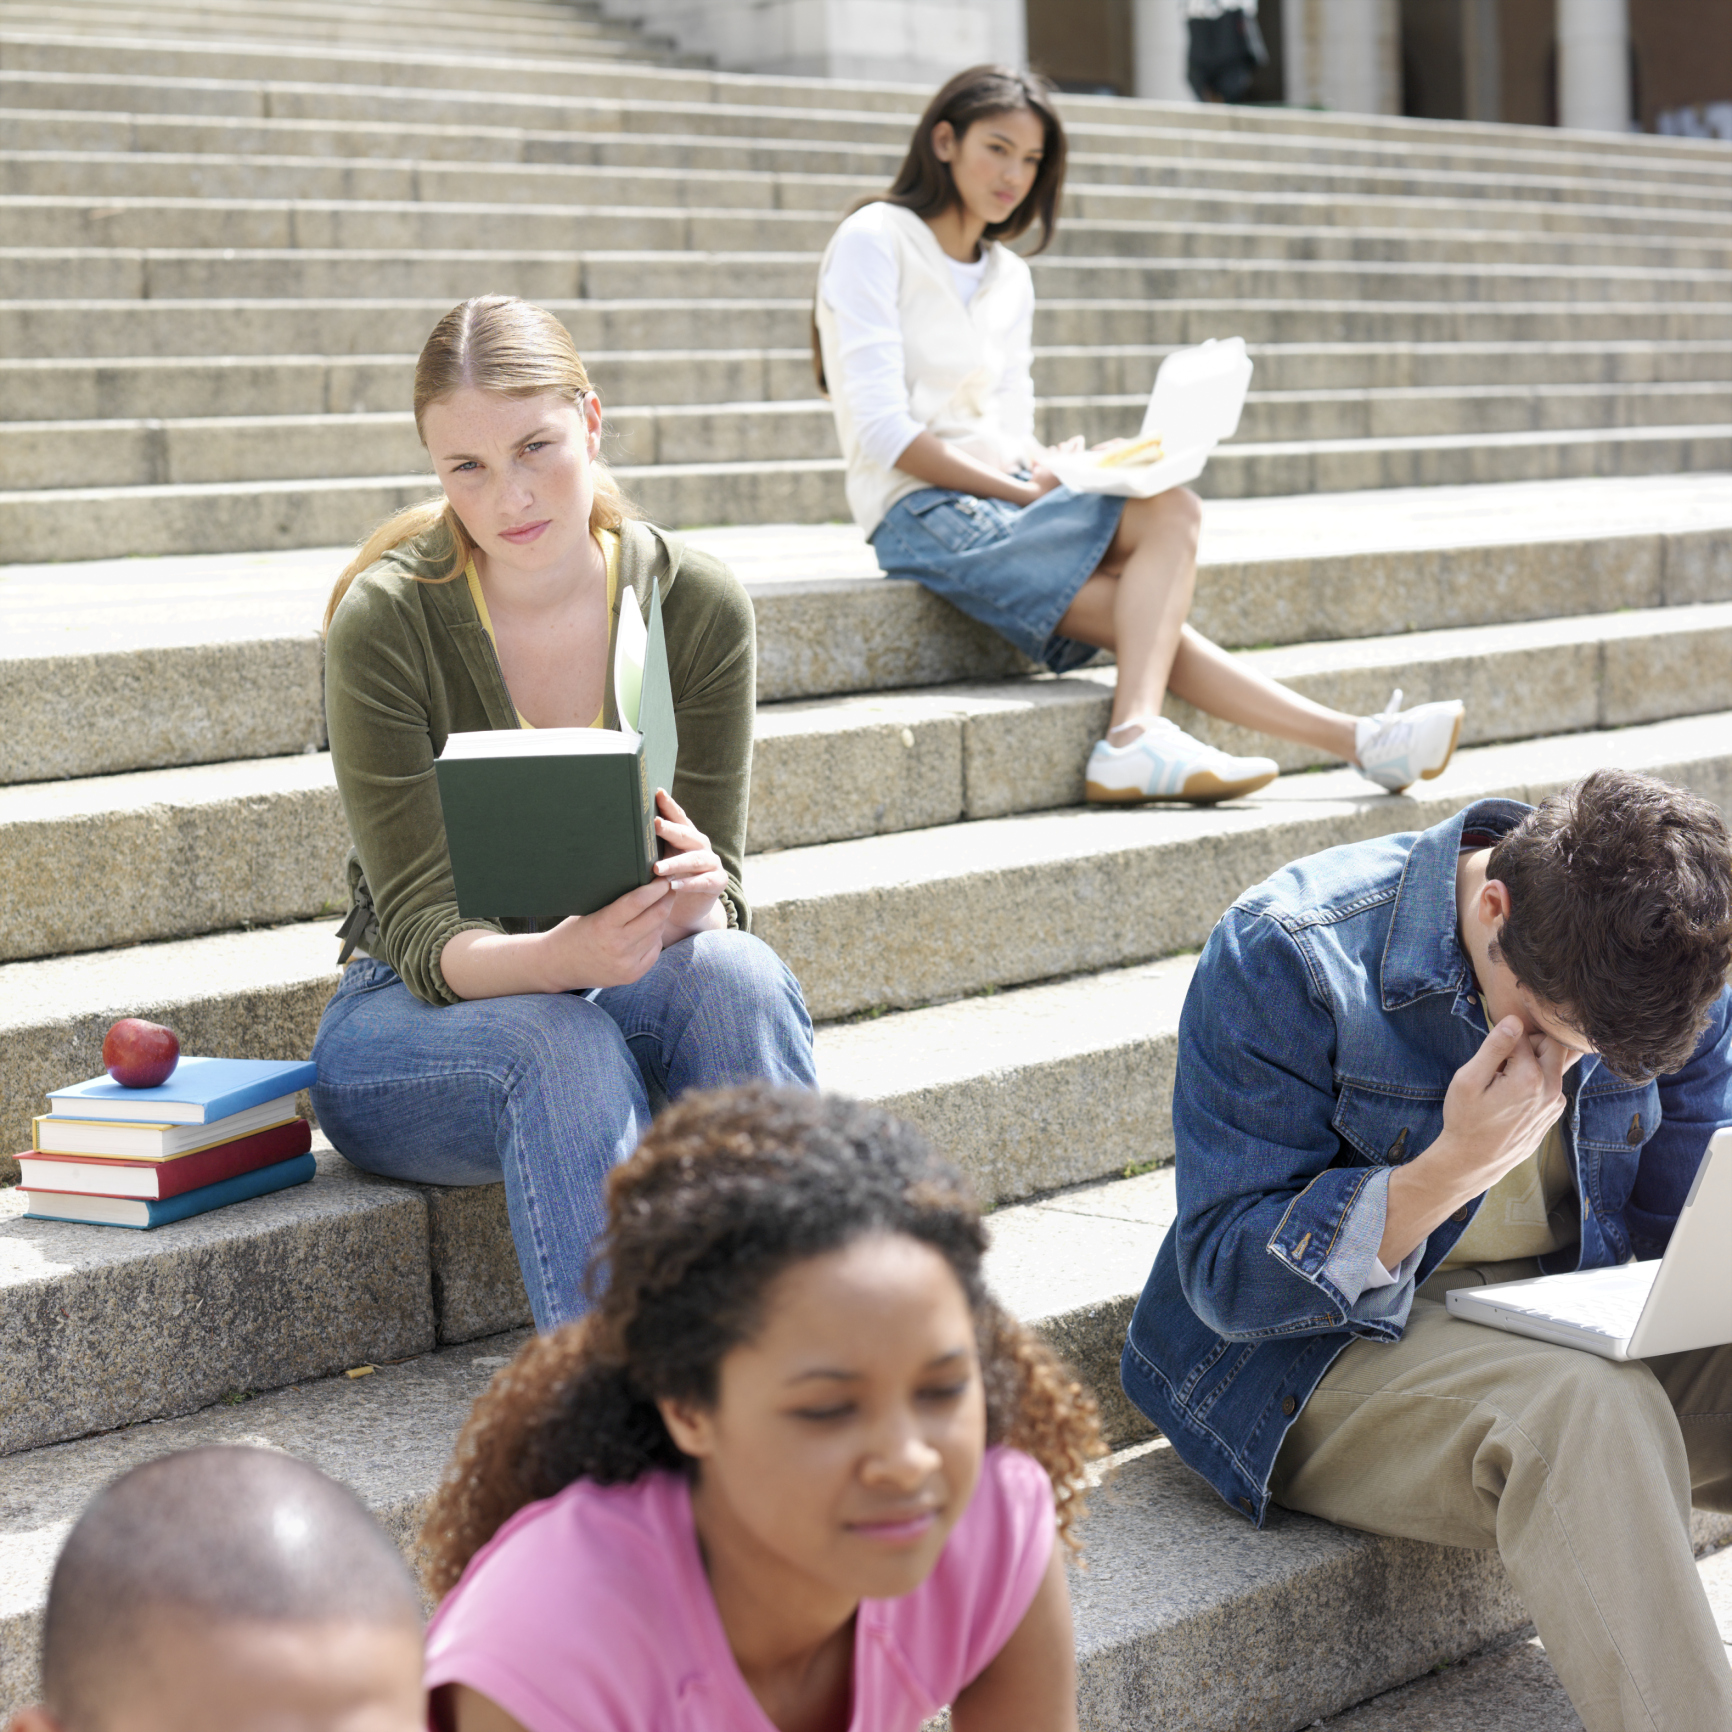 students on steps.jpg